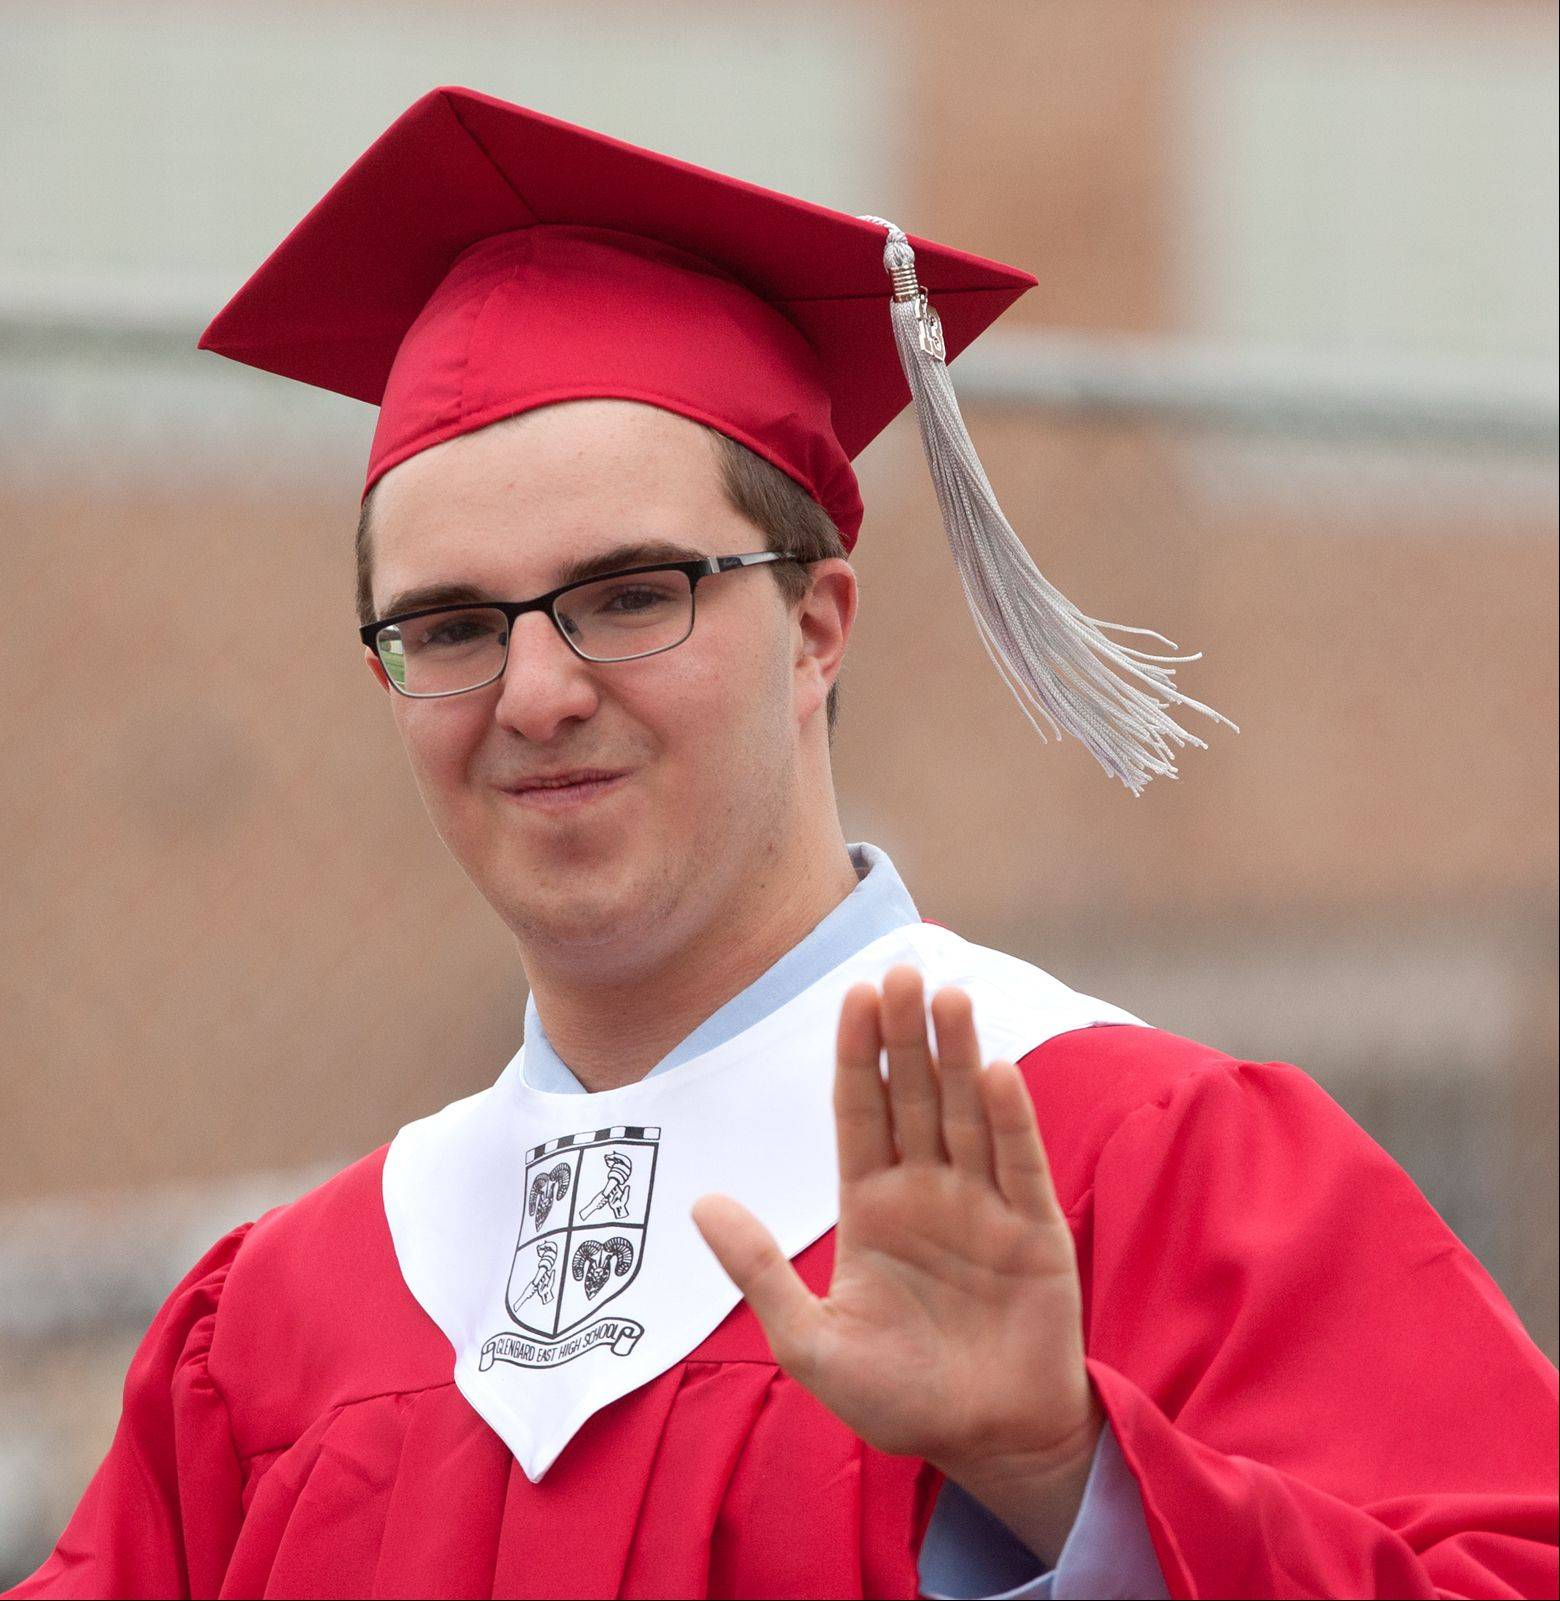 Images from the Glenbard East High School graduation on Saturday, June 1 at the school in Lombard.